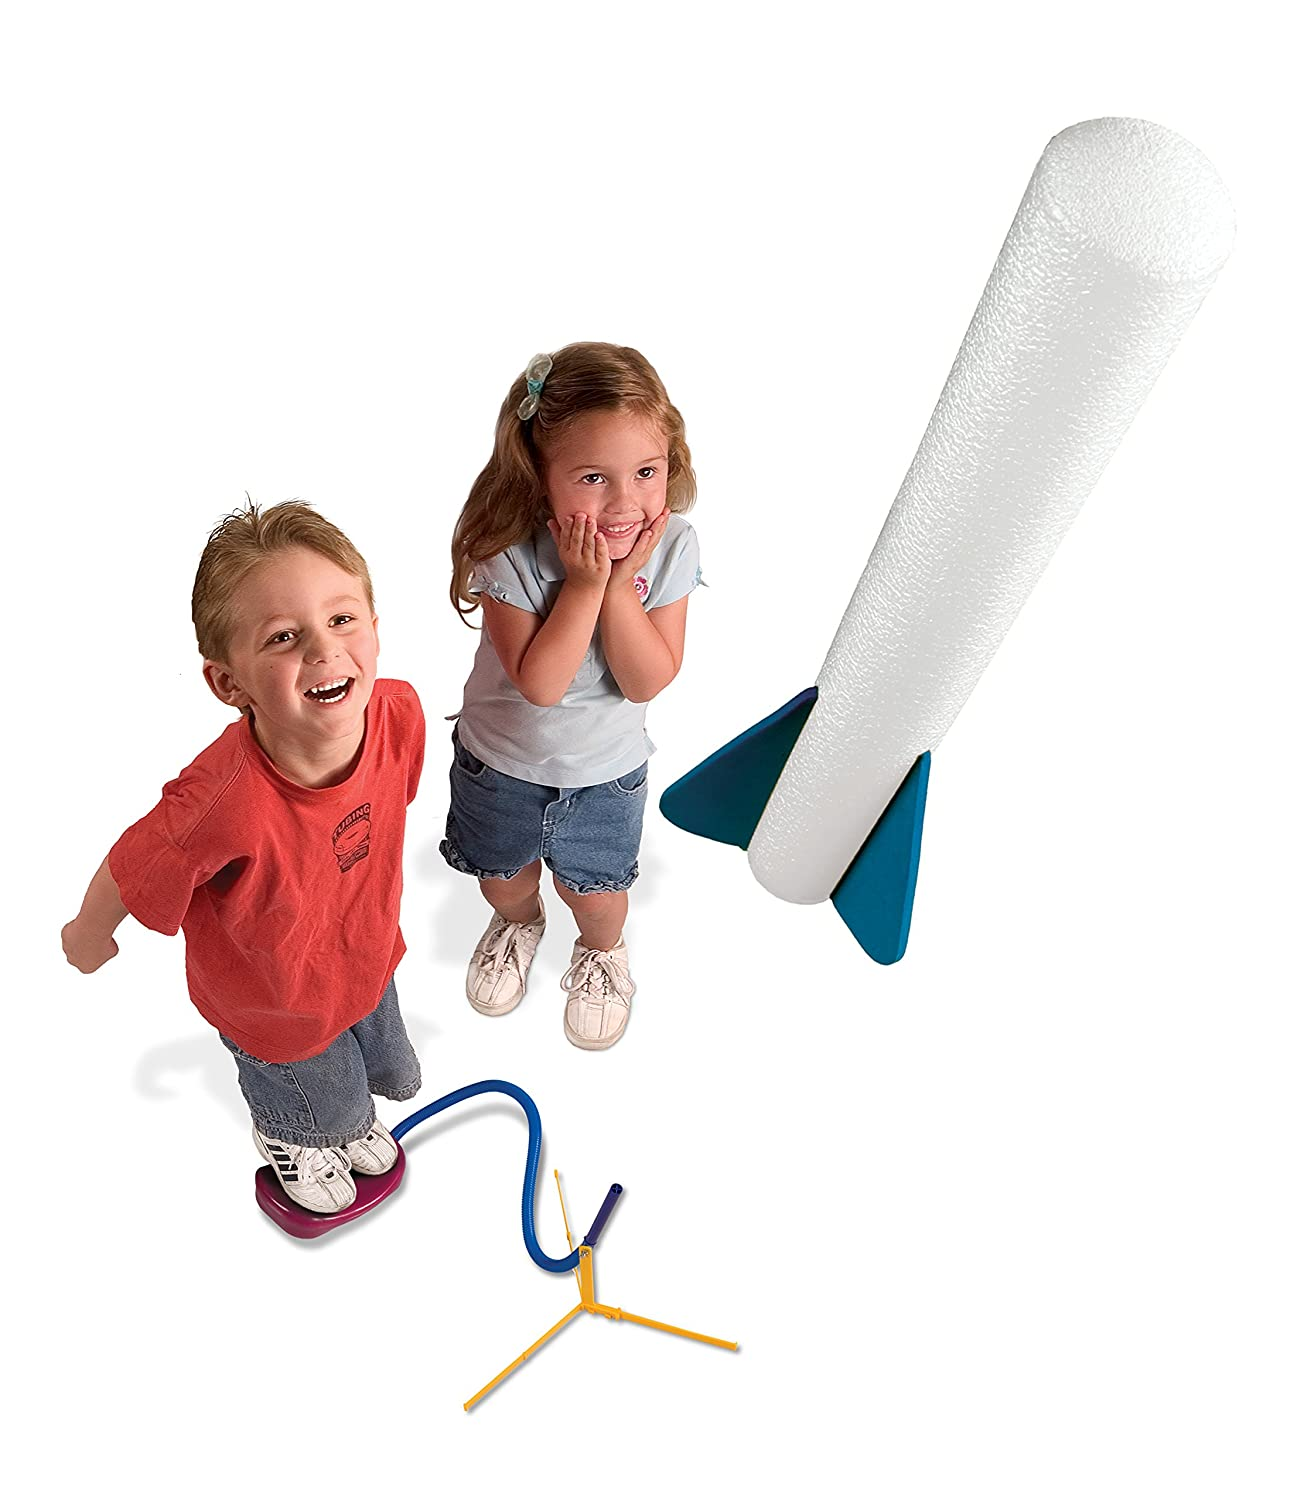 Outdoor Rocket Toy Gift for Boys and Girls Ages 3 Years and Up Glow Rocket 4 Rockets and Toy Rocket Launcher Stomp Rocket Jr